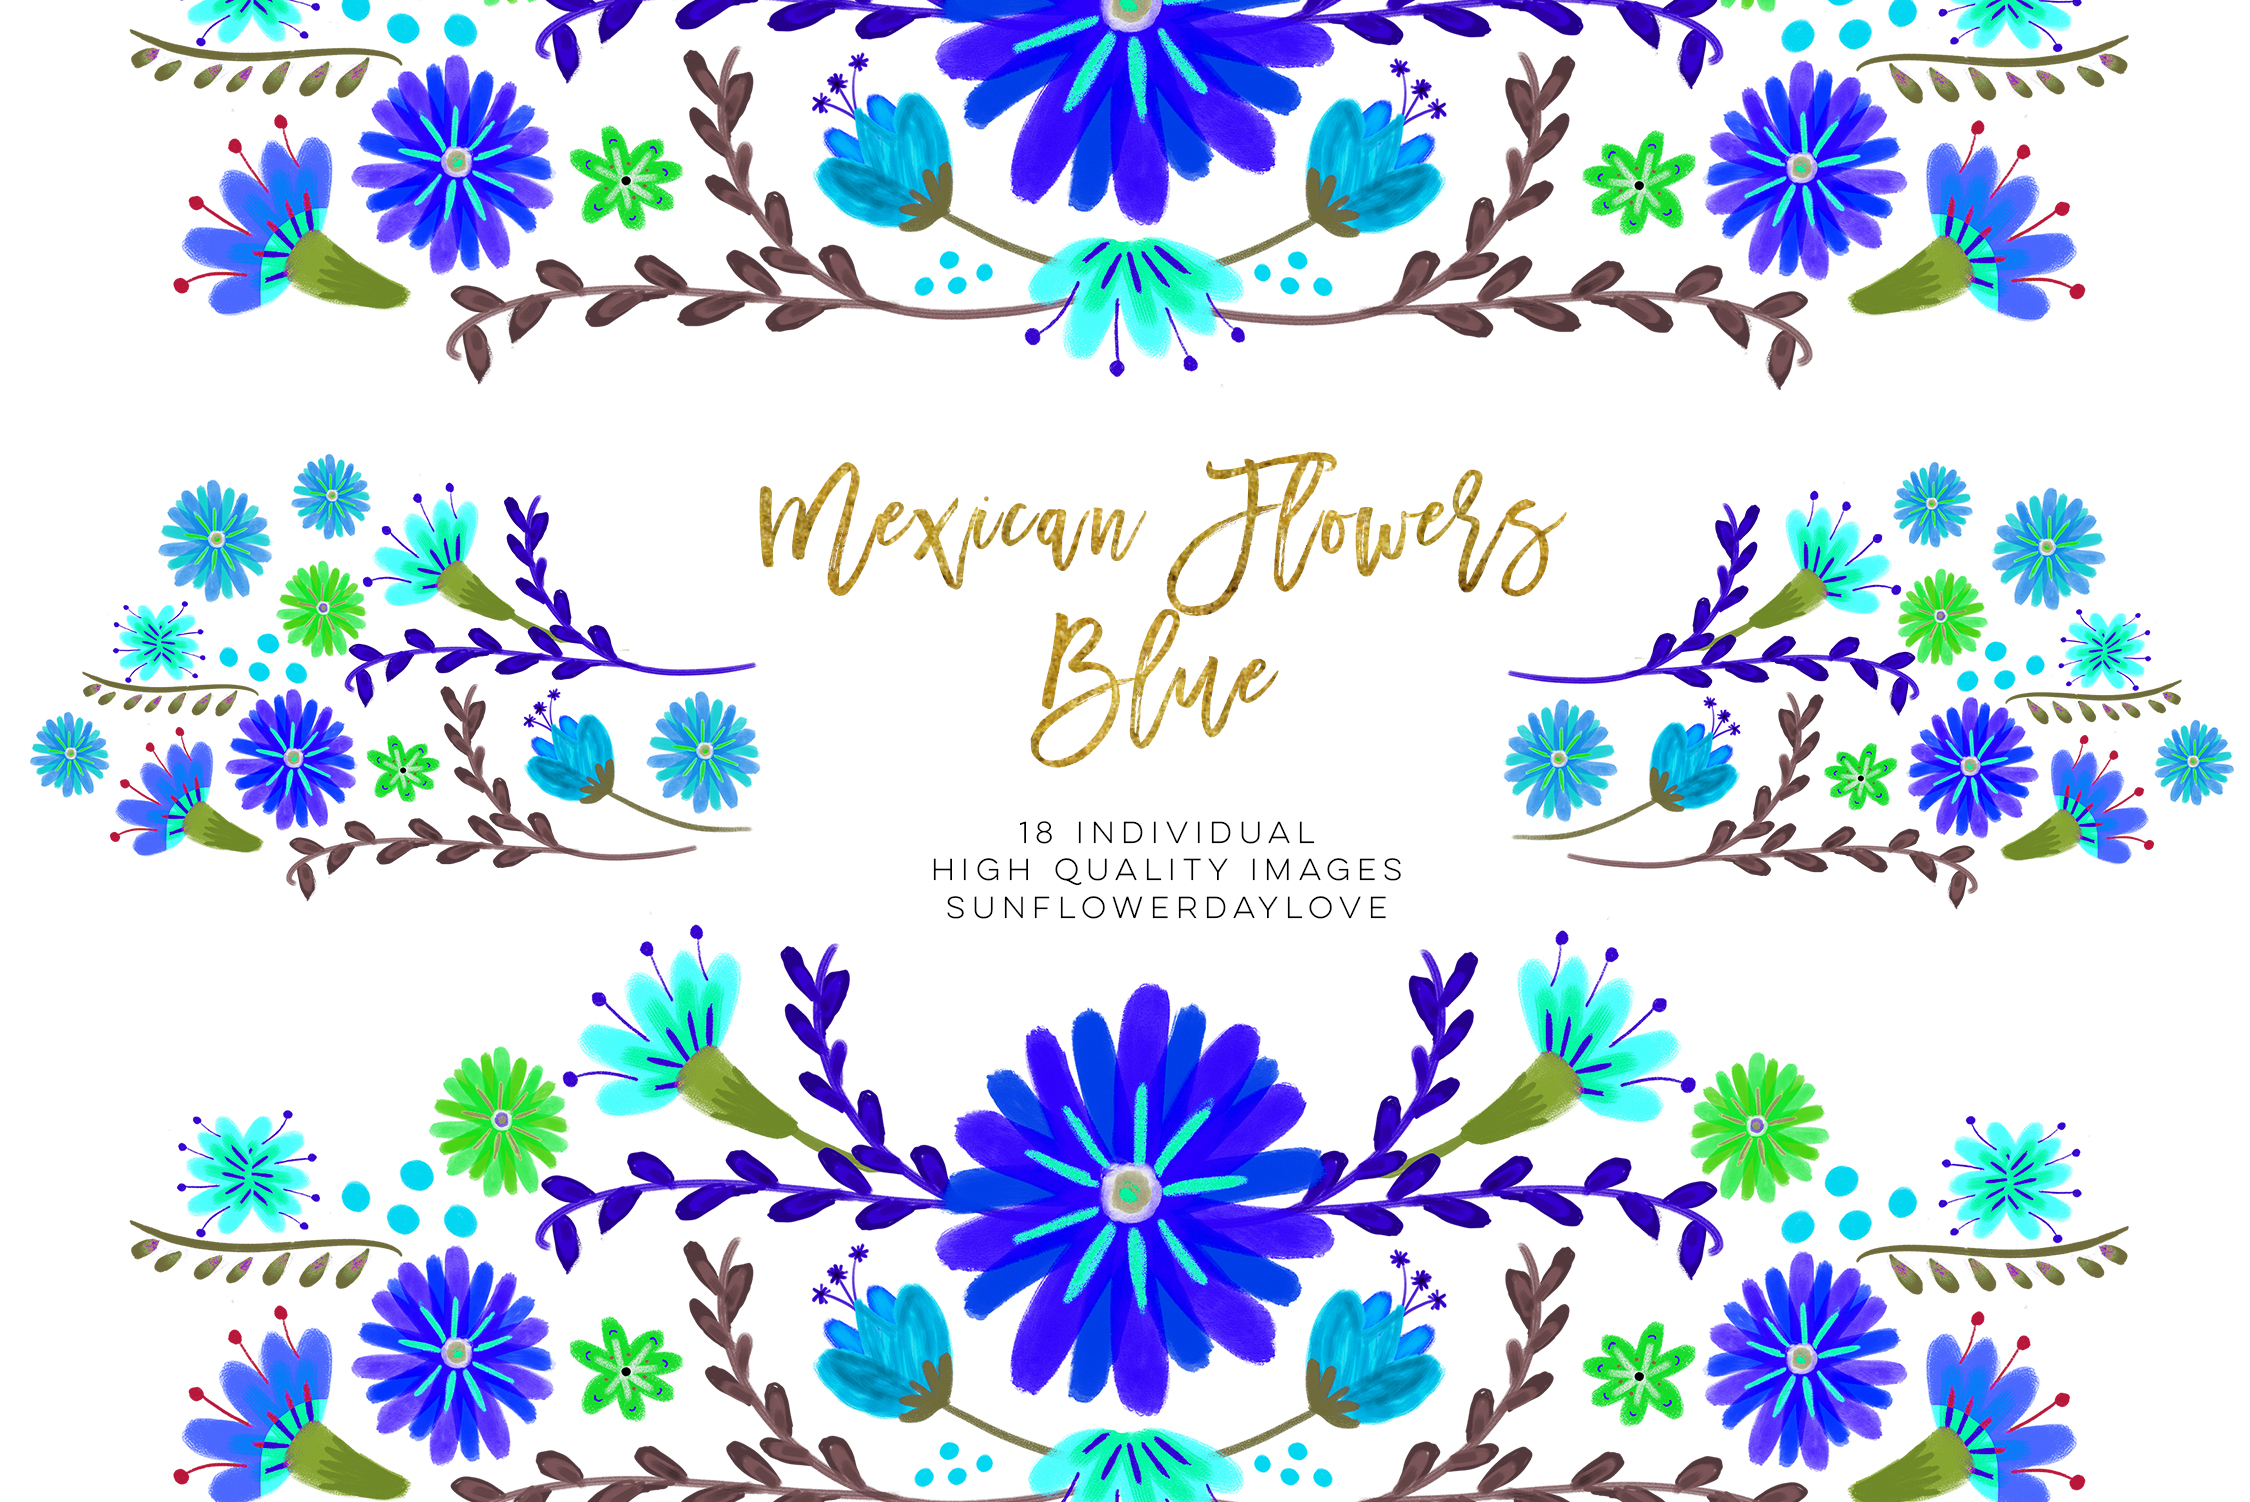 Blue Mexican Watercolor Floral clipart example image 4